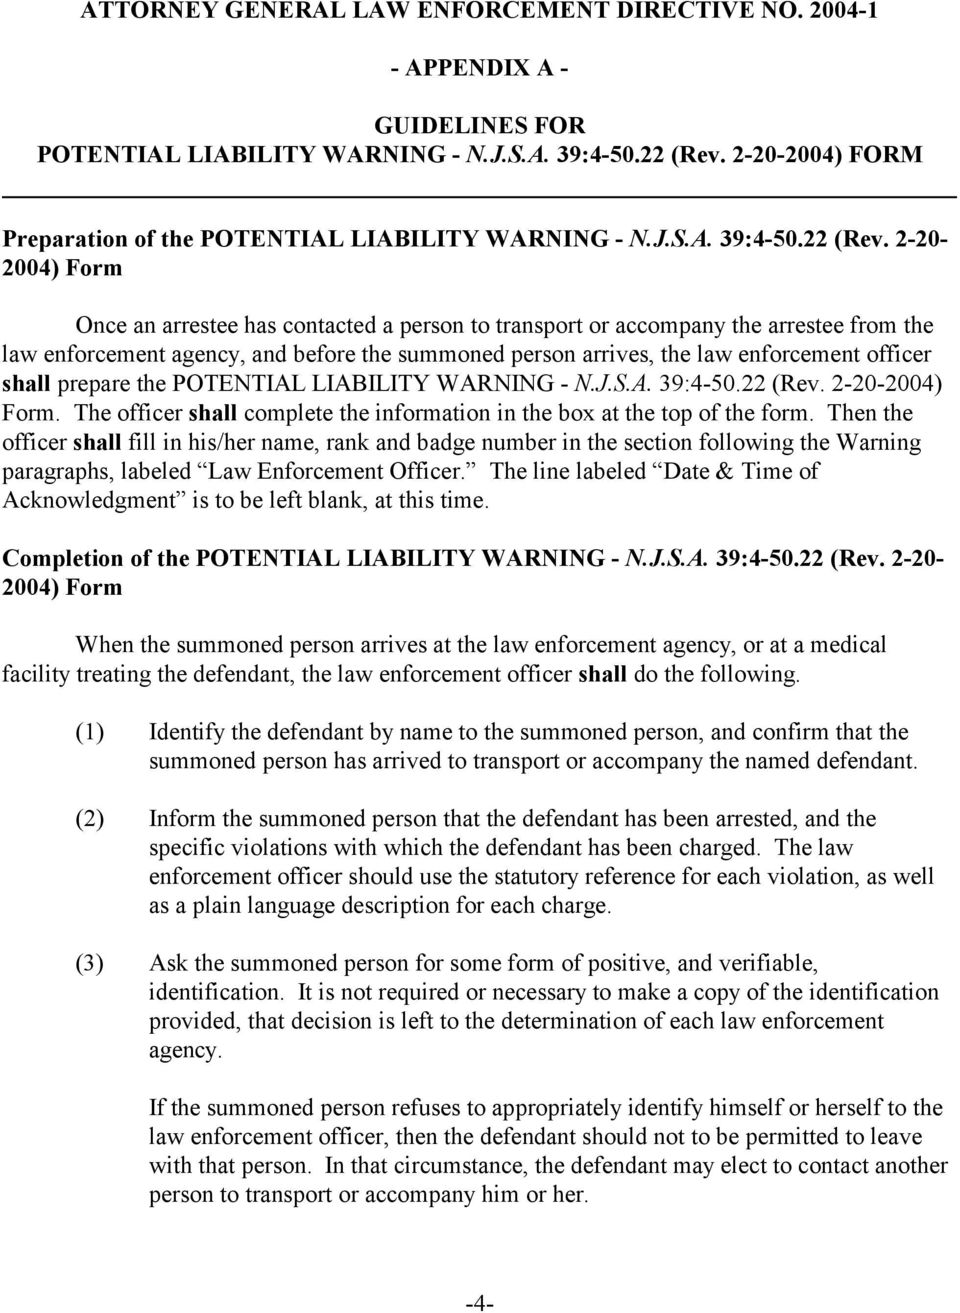 shall prepare the POTENTIAL LIABILITY WARNING - N.J.S.A. 39:4-50.22 (Rev. 2-20-2004) Form. The officer shall complete the information in the box at the top of the form.